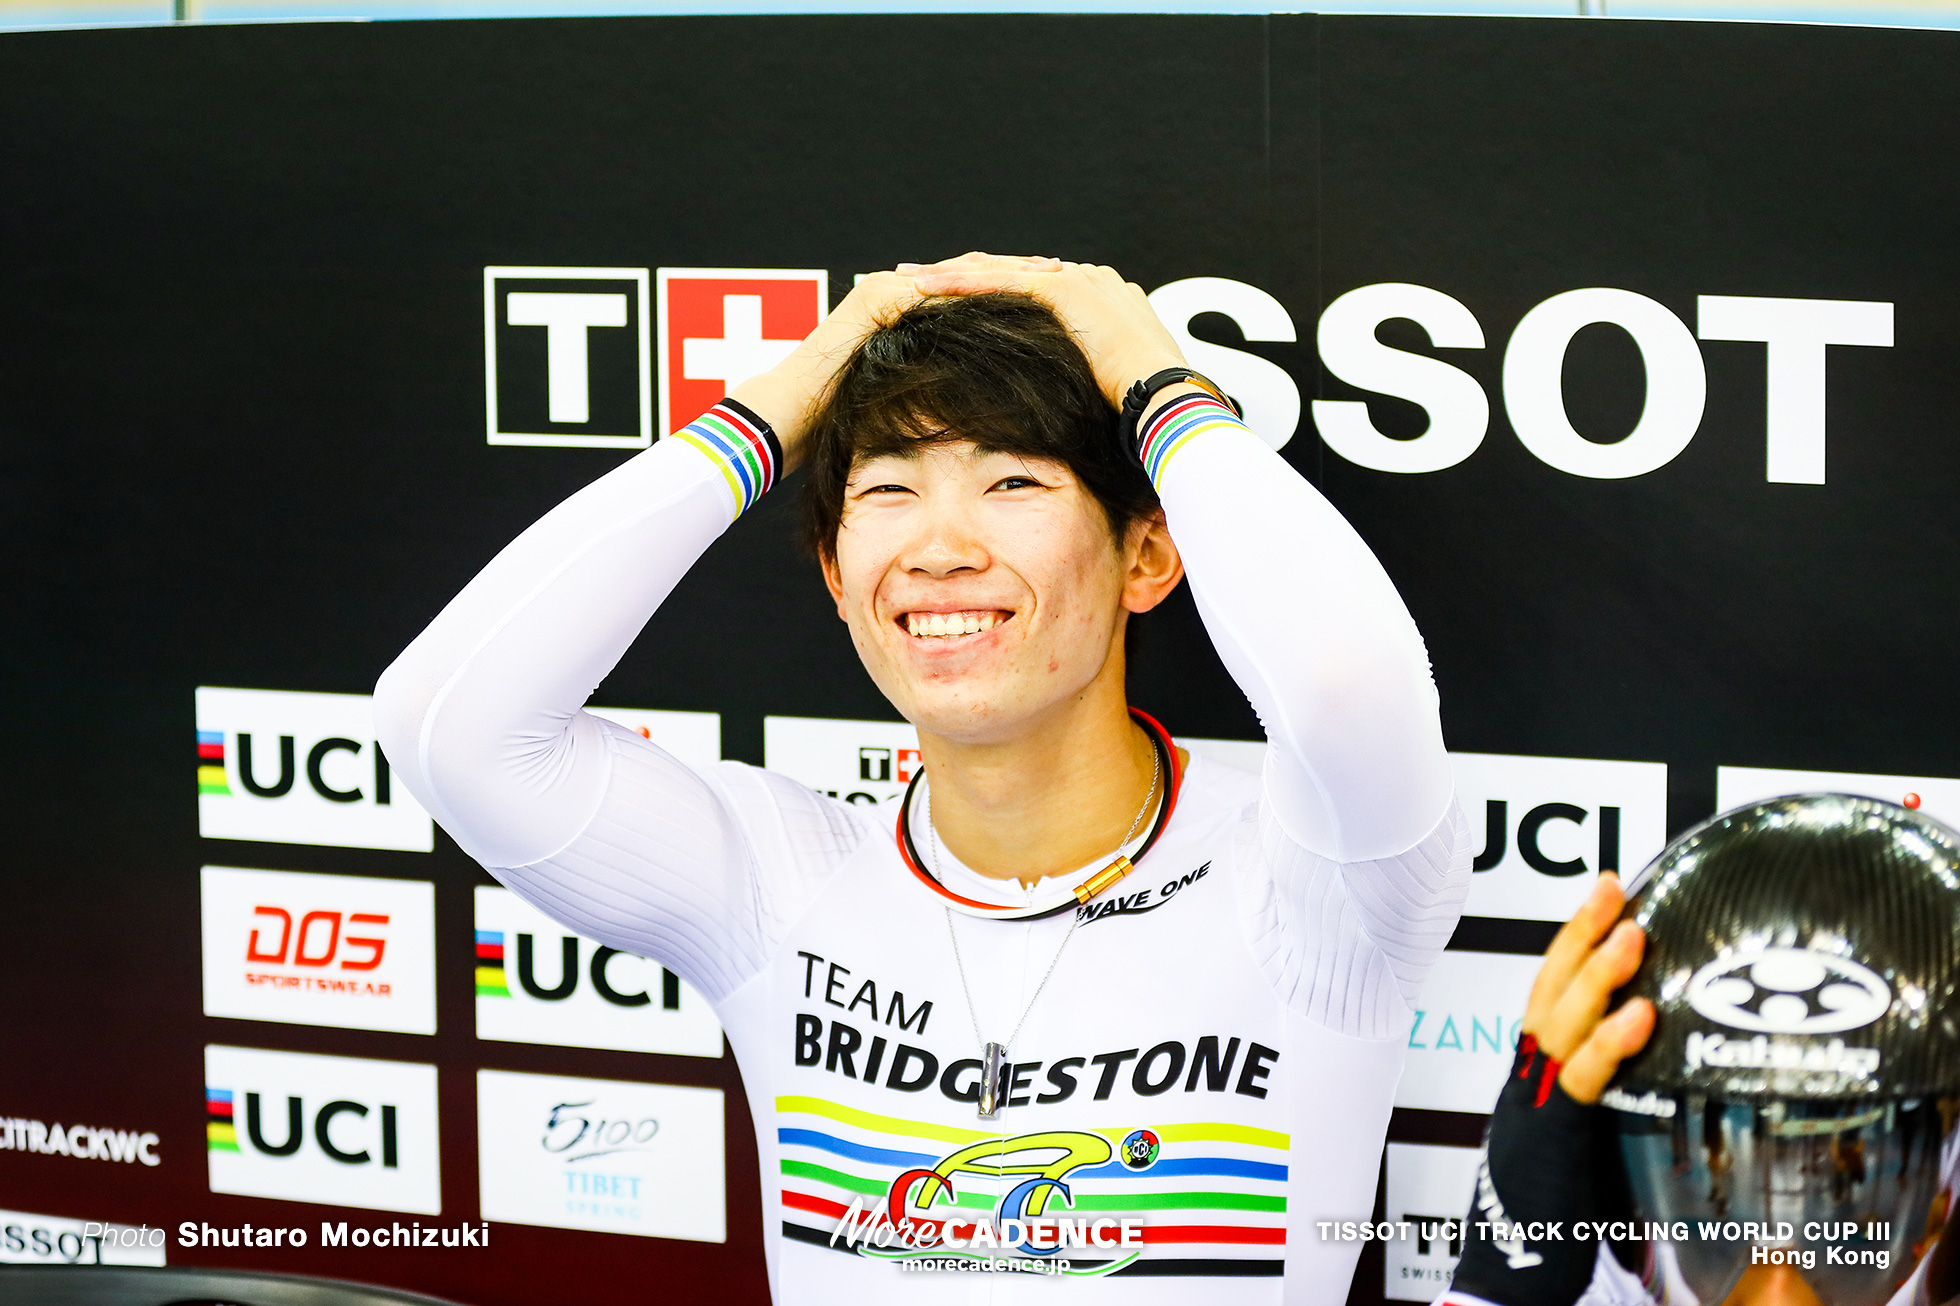 沢田桂太郎, Men's Team Pursuit / TISSOT UCI TRACK CYCLING WORLD CUP III, Hong Kong, 沢田桂太郎